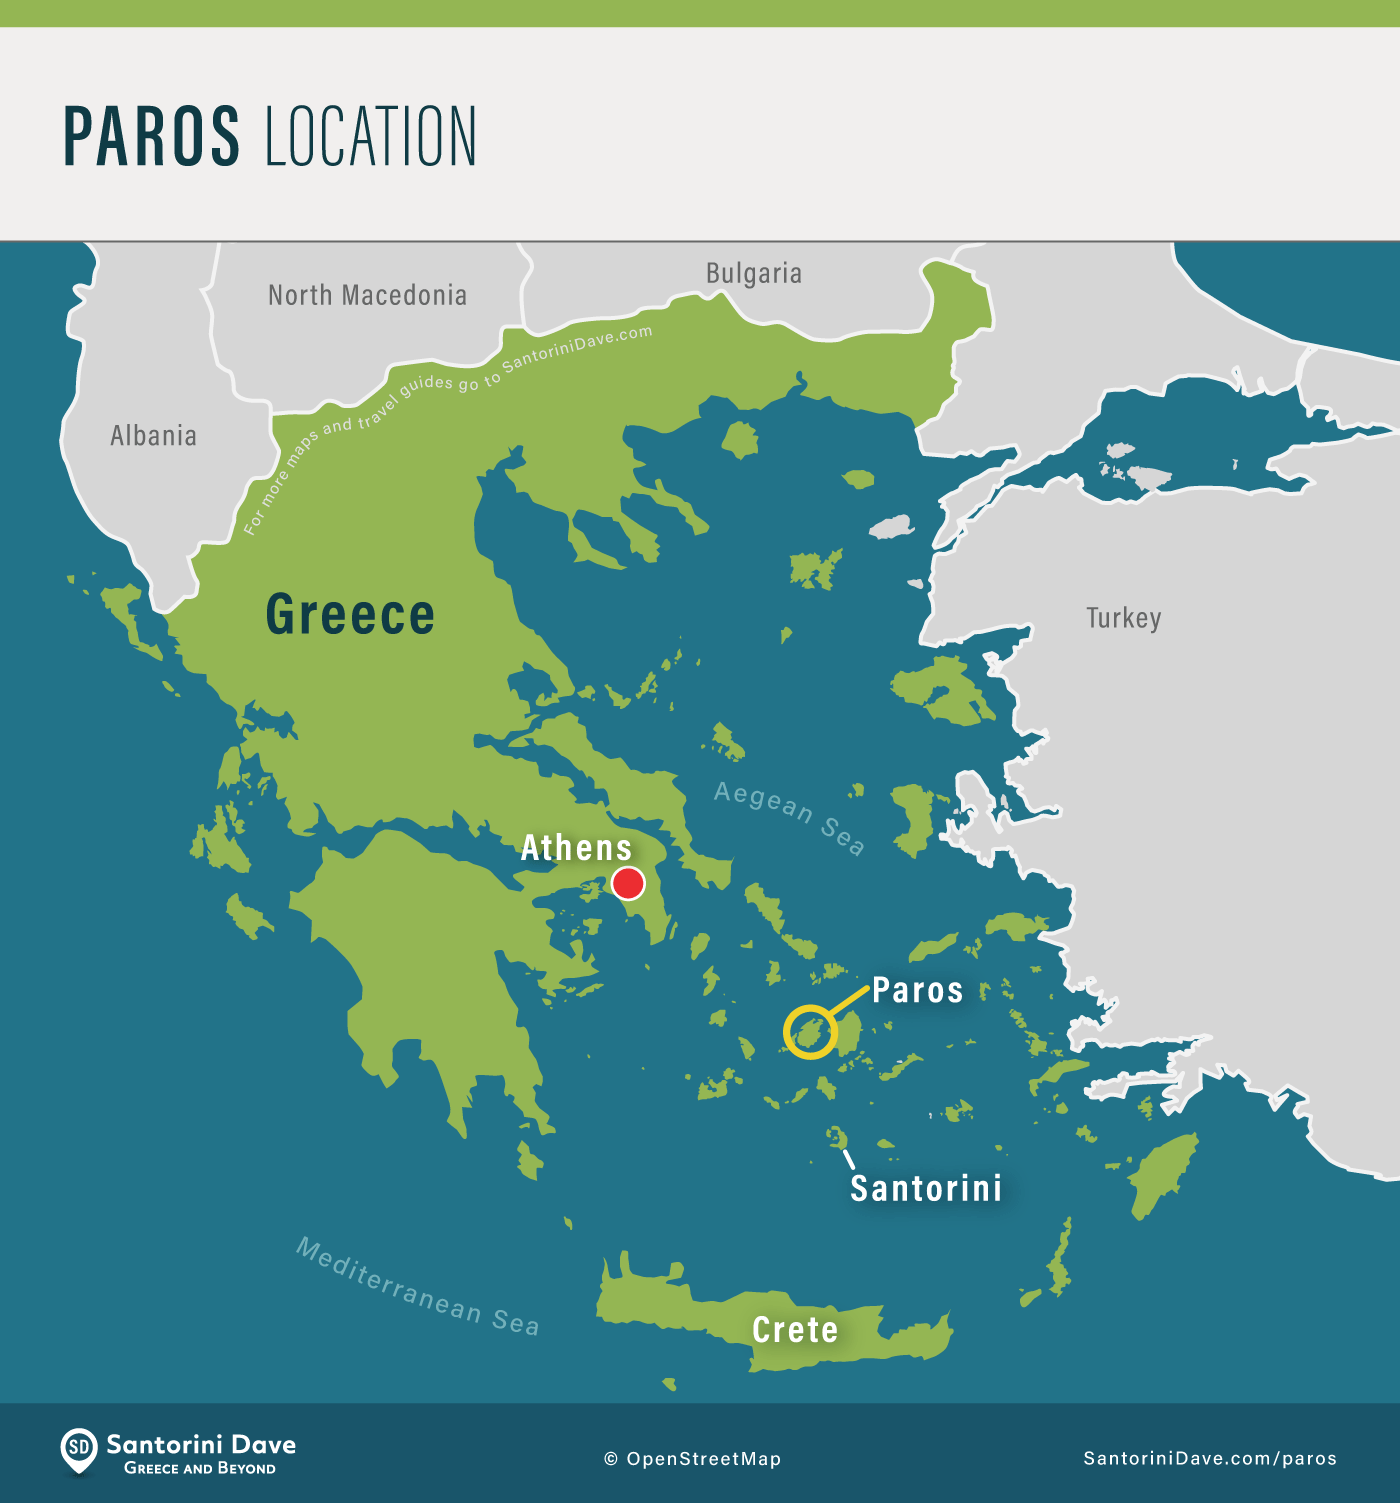 Map showing the location of Paros Island in Greece